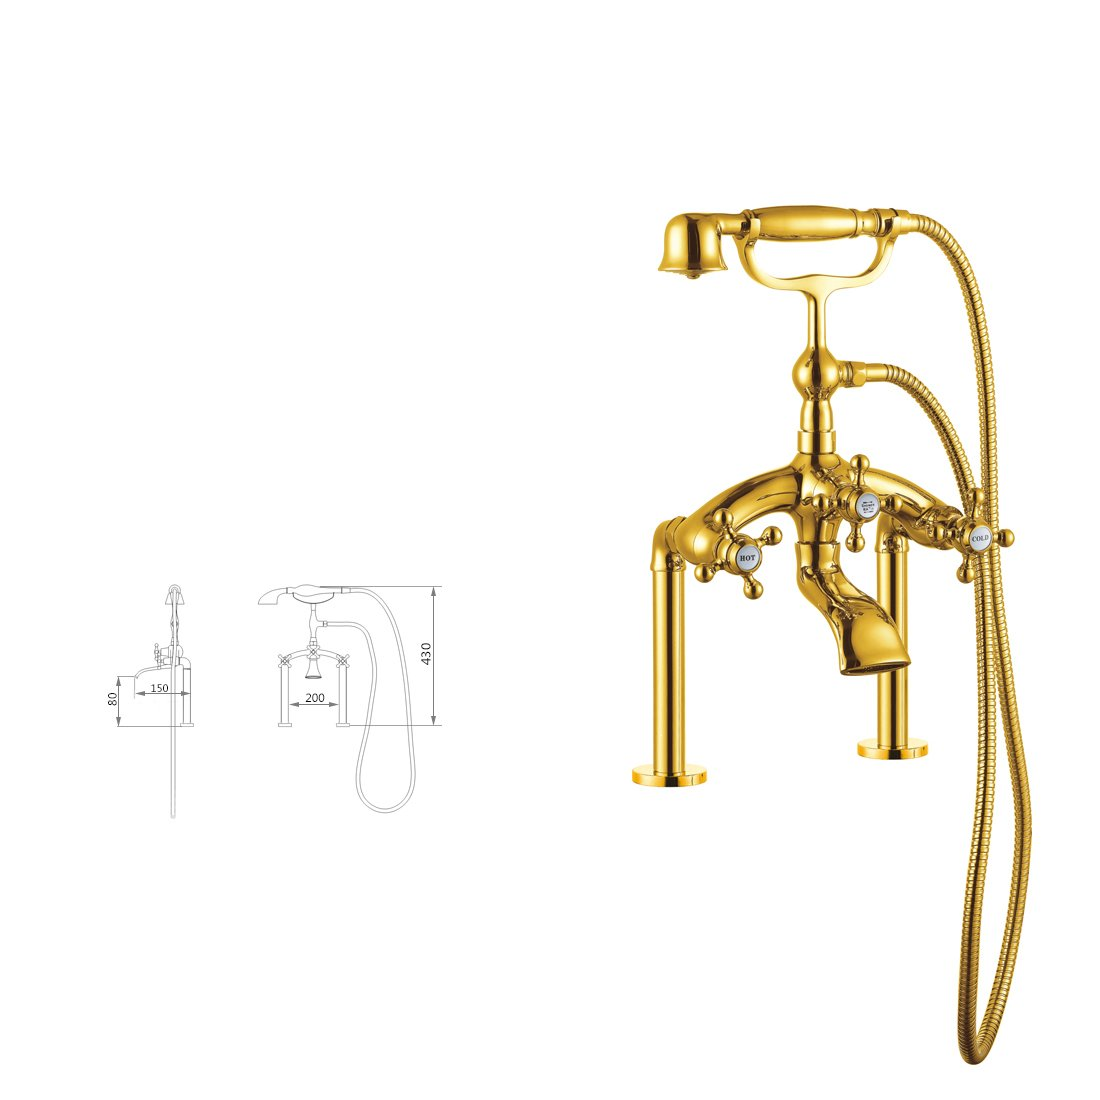 Centerset Solid Brass Double Handles Bridge Bathtub Faucet with Hand Shower Ti-PVD finish 9127